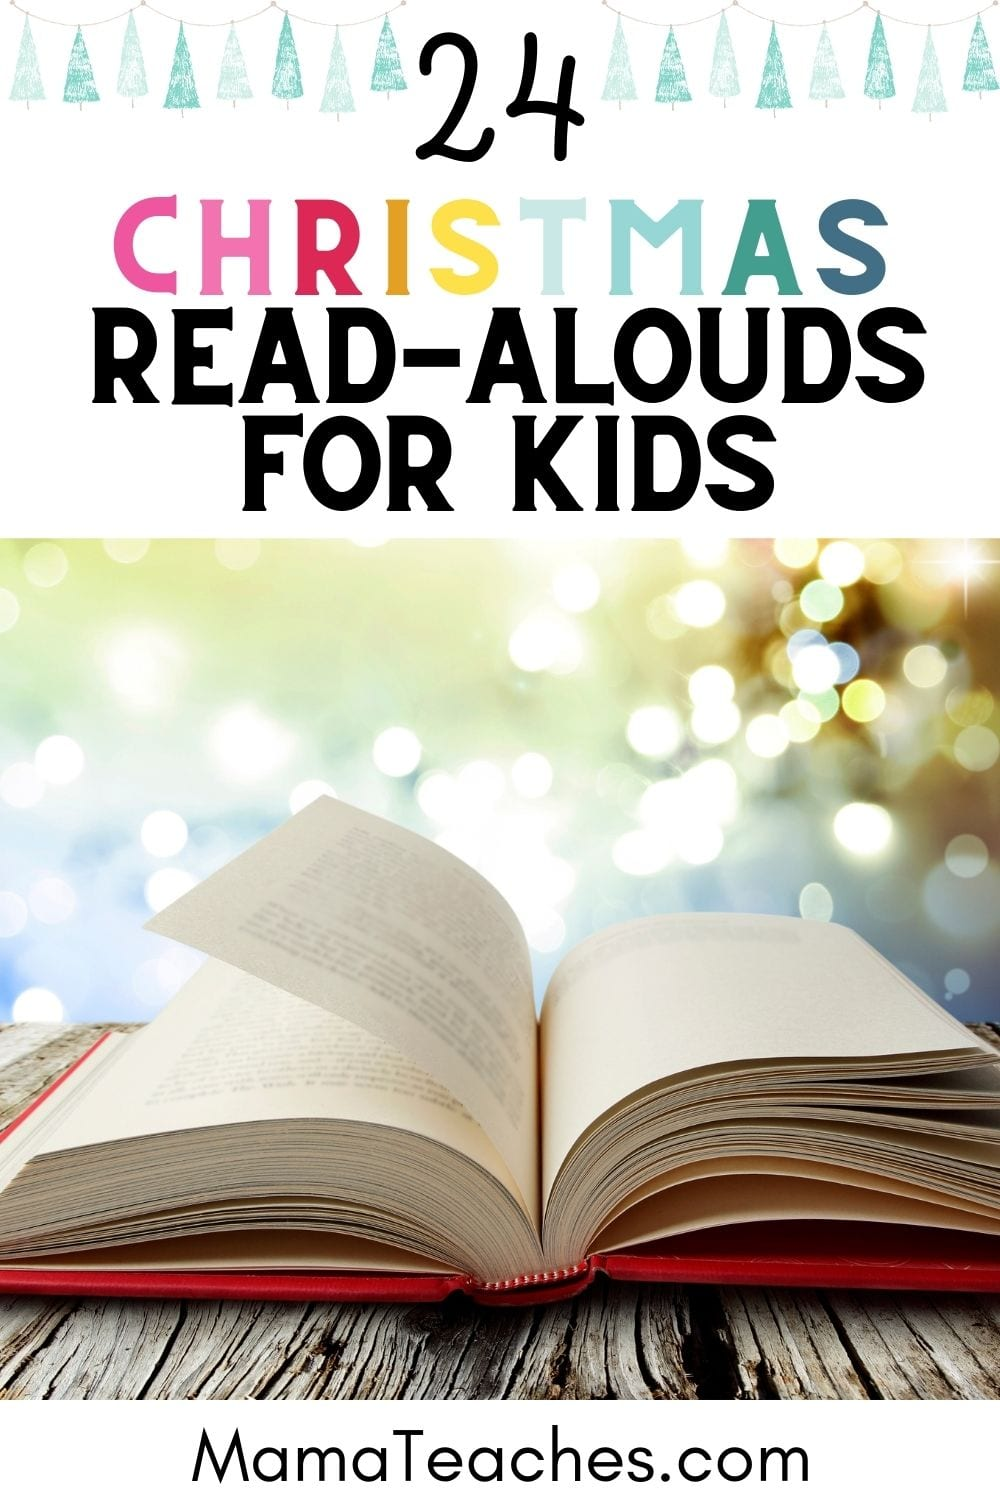 24 Christmas Read-Alouds for Kids